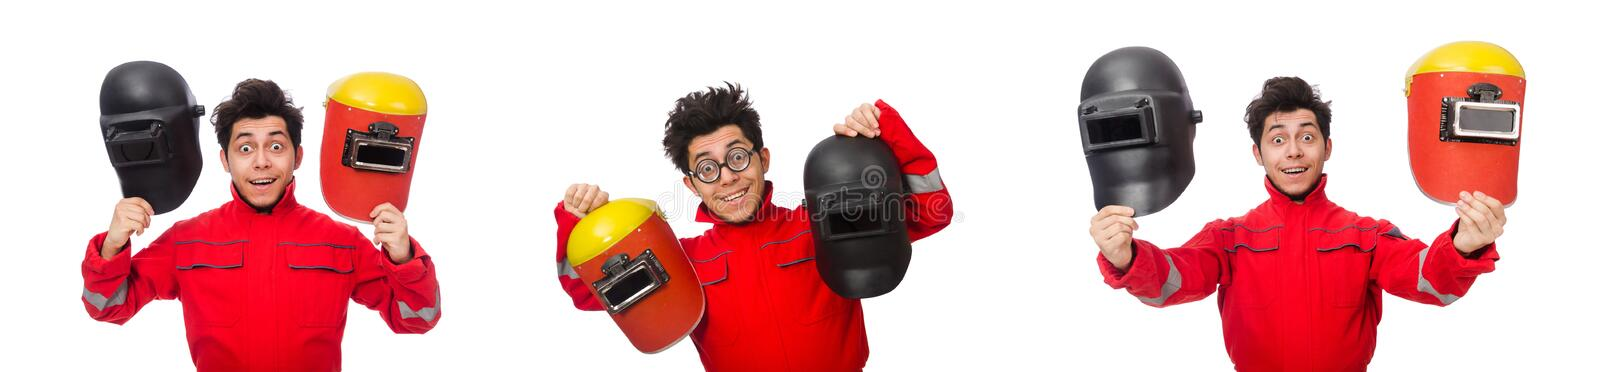 The funny welder isolated on white. Funny welder isolated on white stock photos